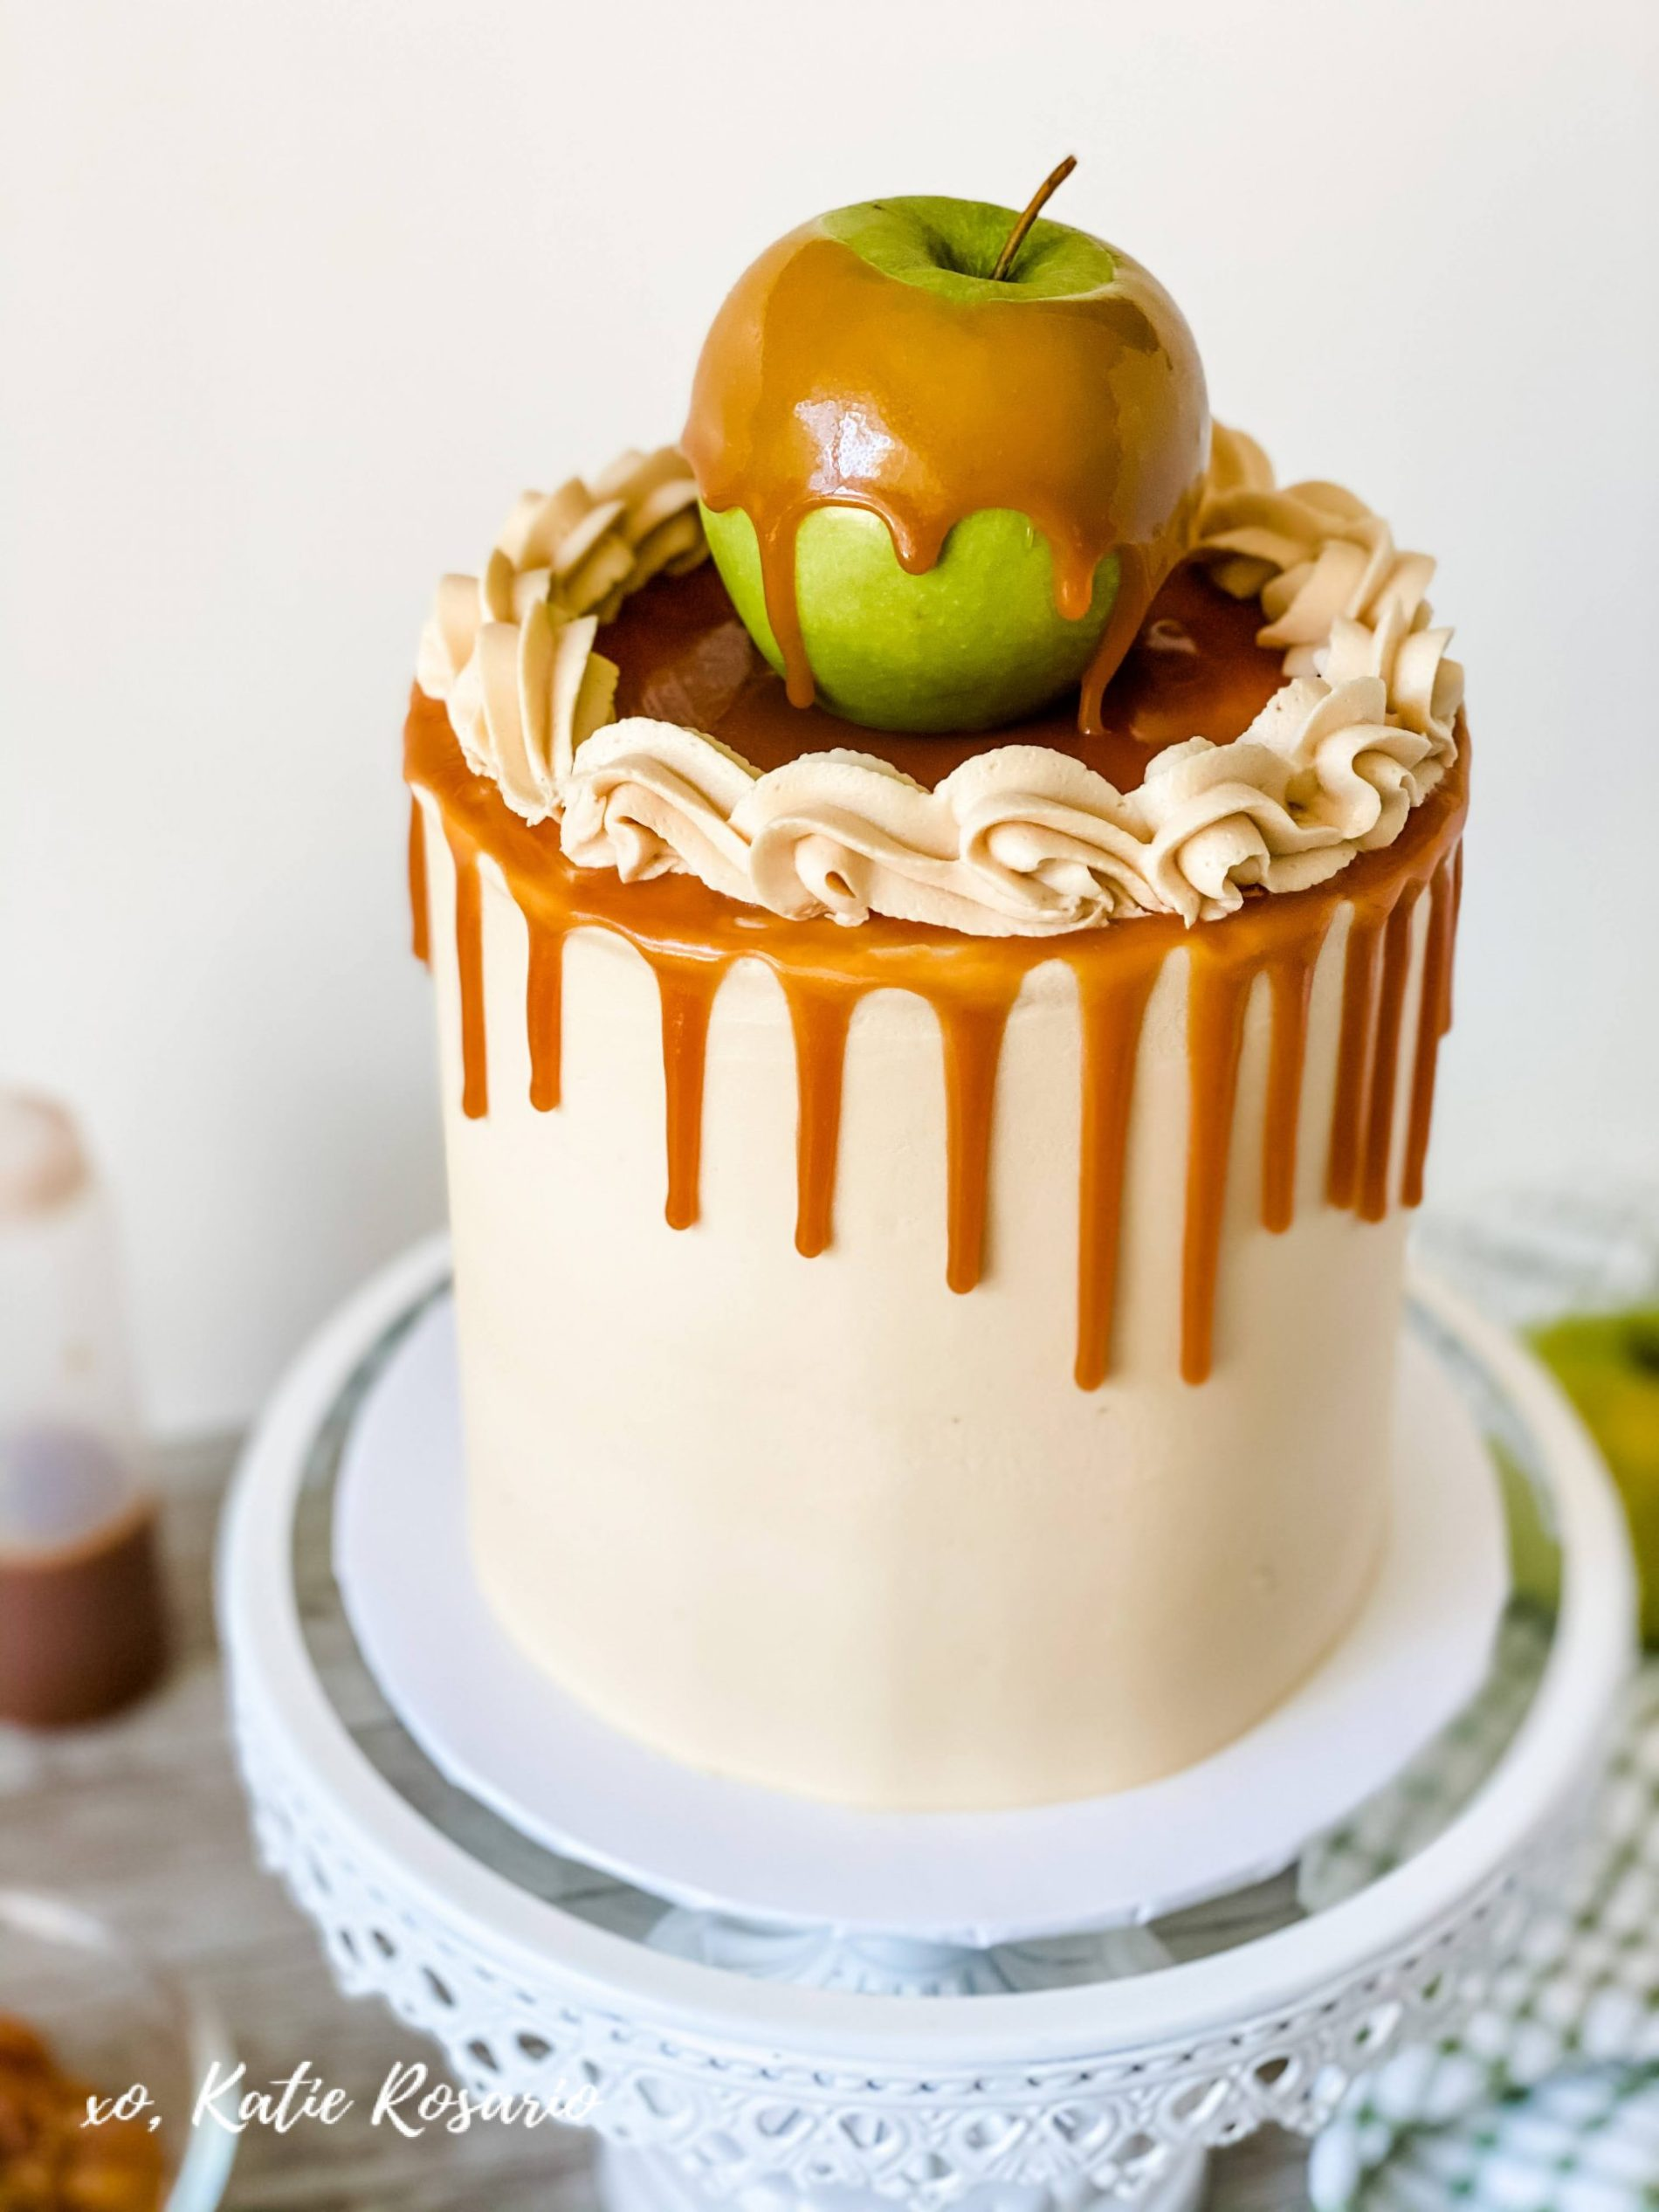 4. Caramel Apple Cake Learn how to make this insanely delicious Caramel Apple Cake. Kick-off apple season with this tasty Caramel Apple Cake! A caramel cake made with apple pie filling, paired with caramel buttercream and caramel drizzle. This Caramel Apple Cake has a beautiful balance of sweet, salty, and full of warm fall spices.